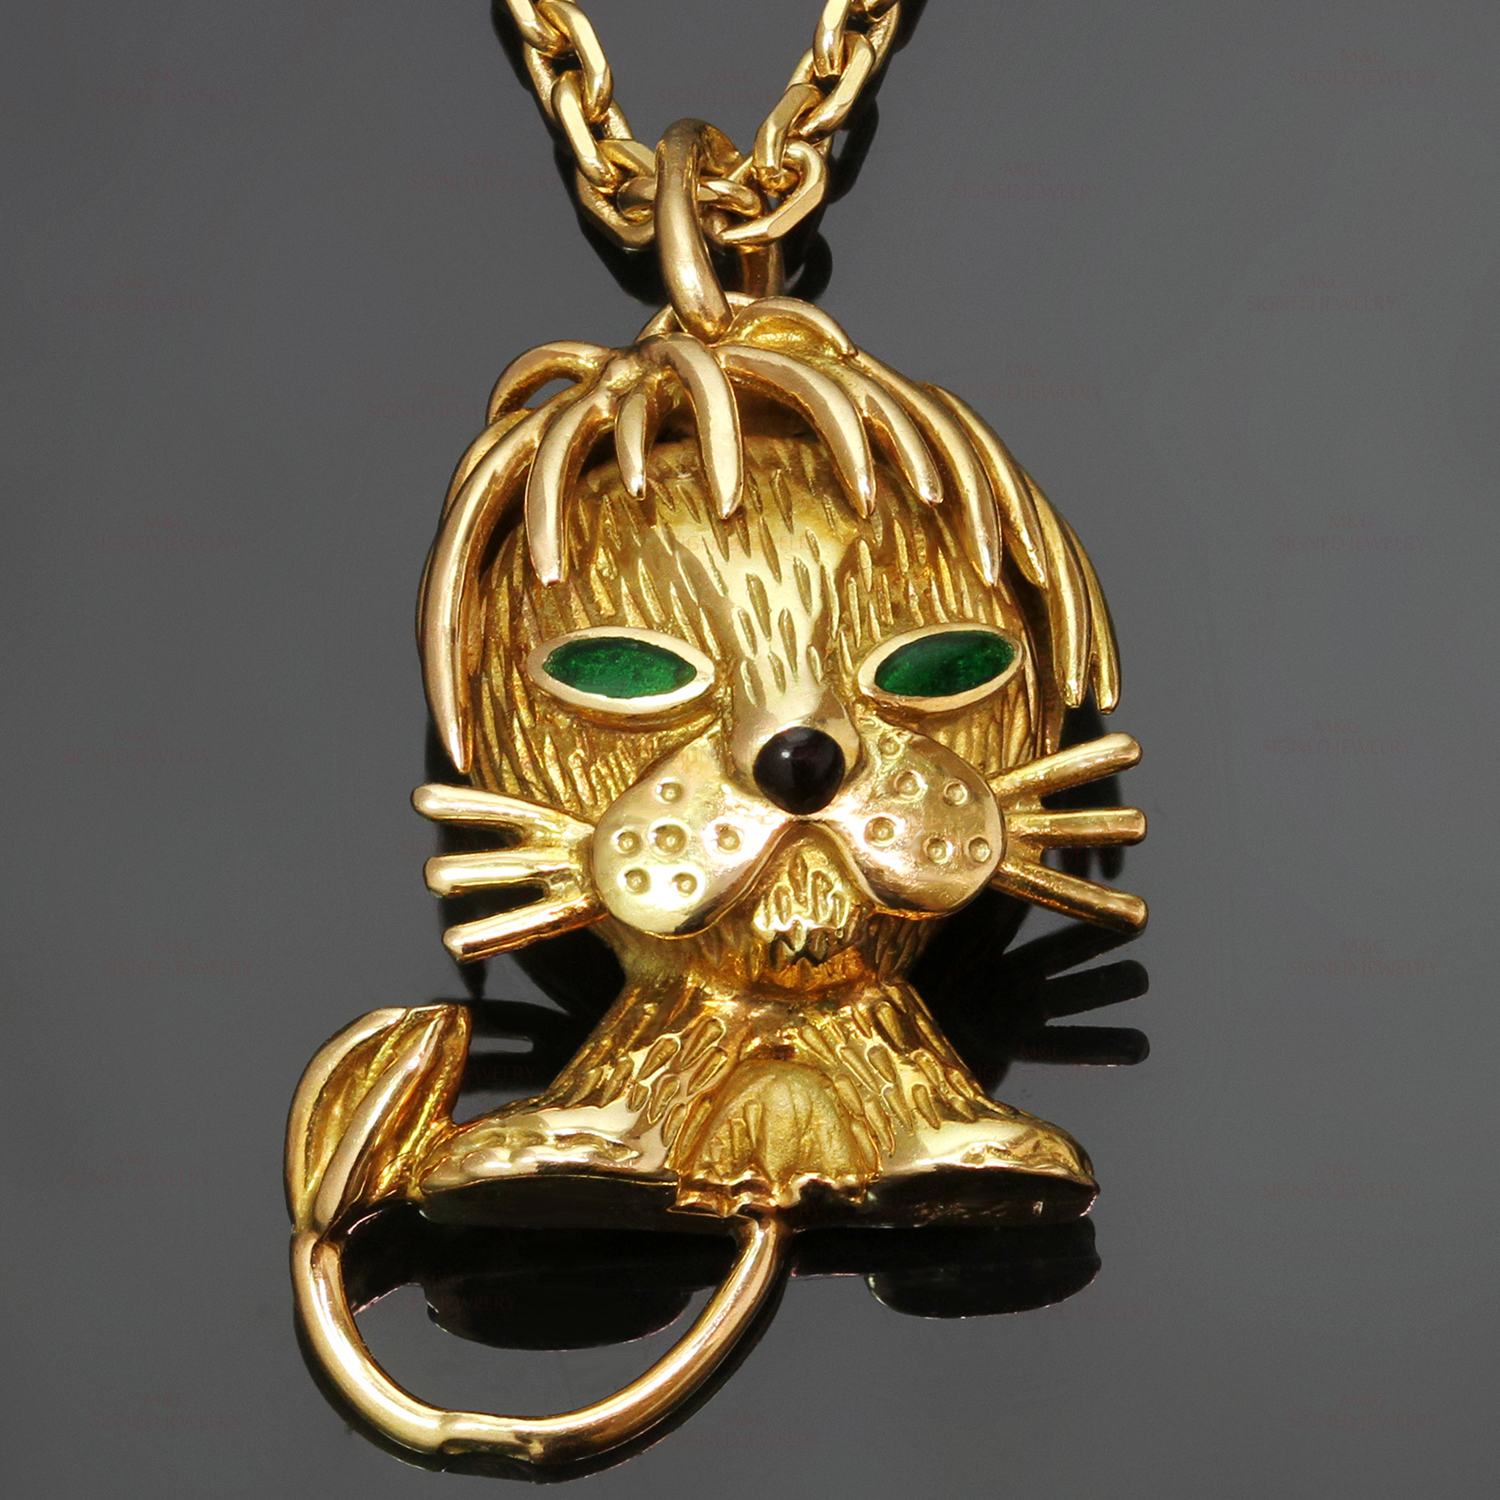 thomas yellow lyst view gold sabo jewelry sterling zirconia wblack pendant silver lion fullscreen